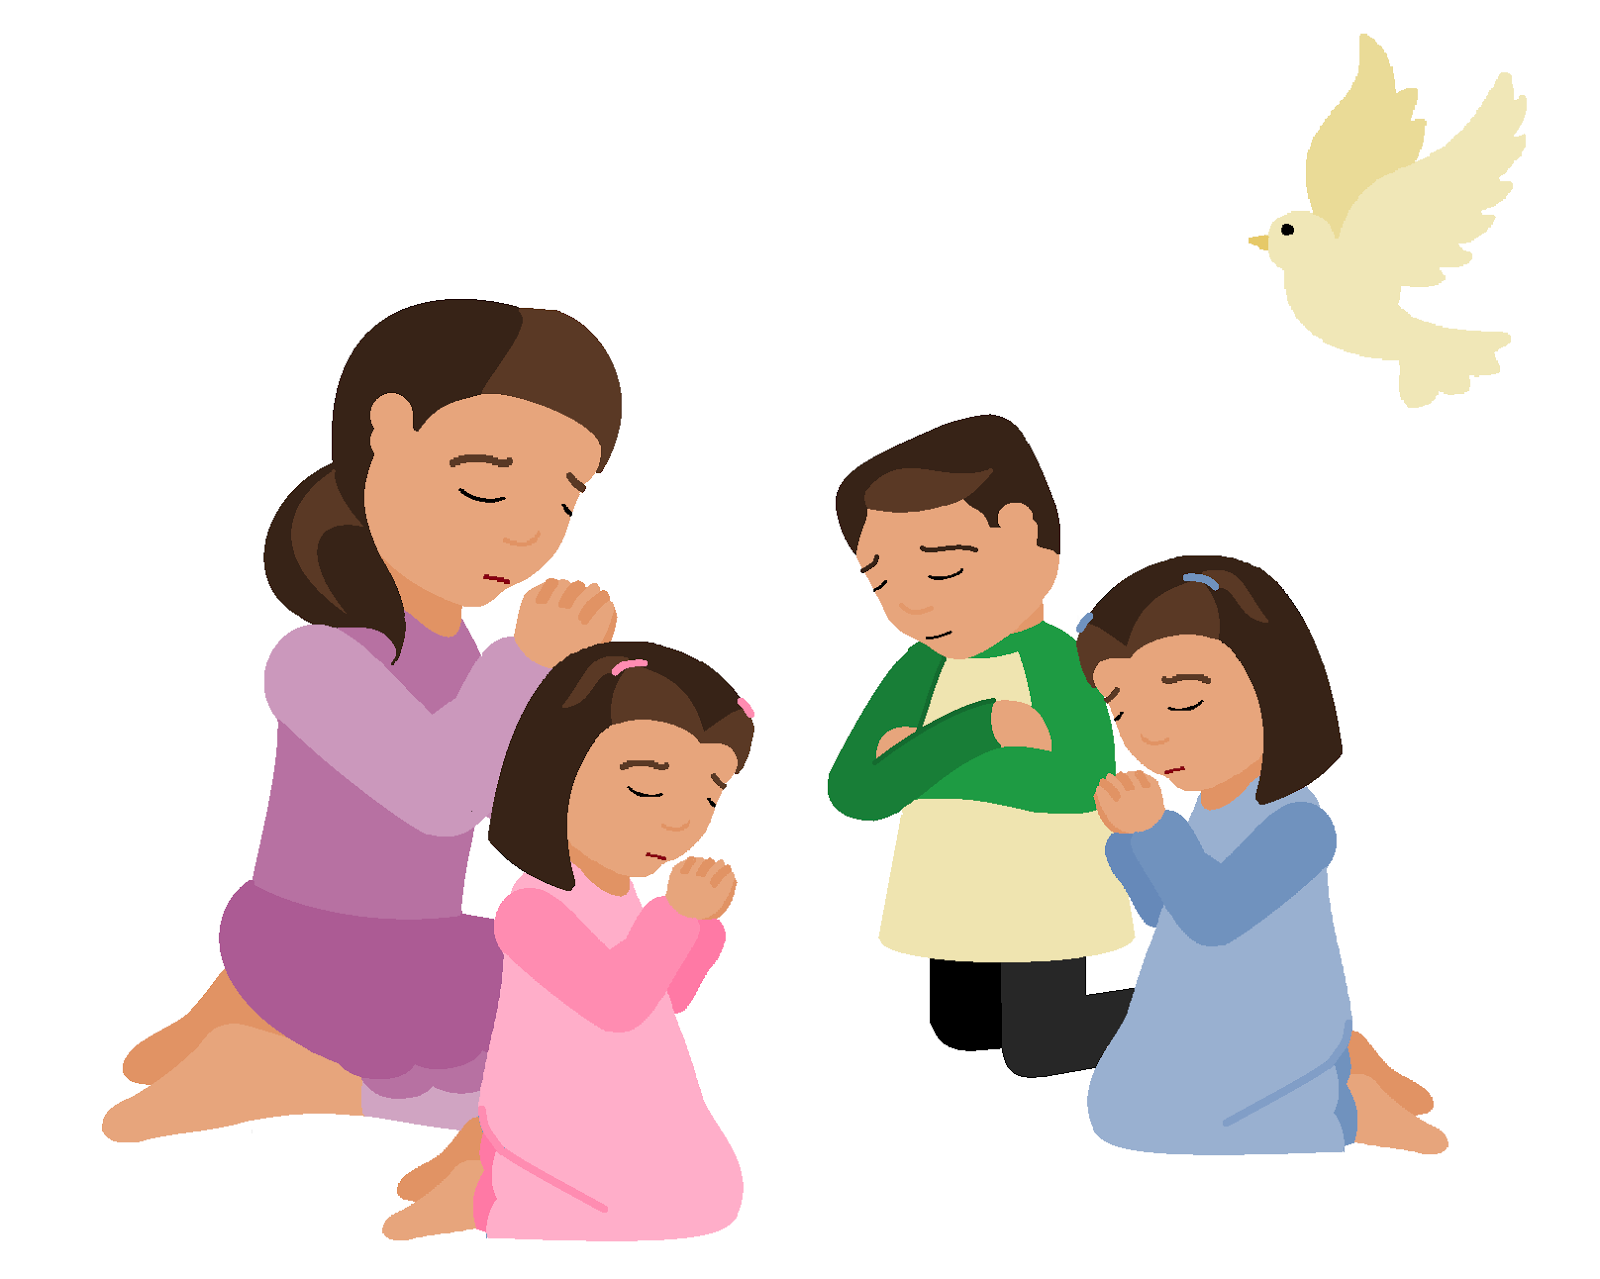 children praying clipart - photo #5